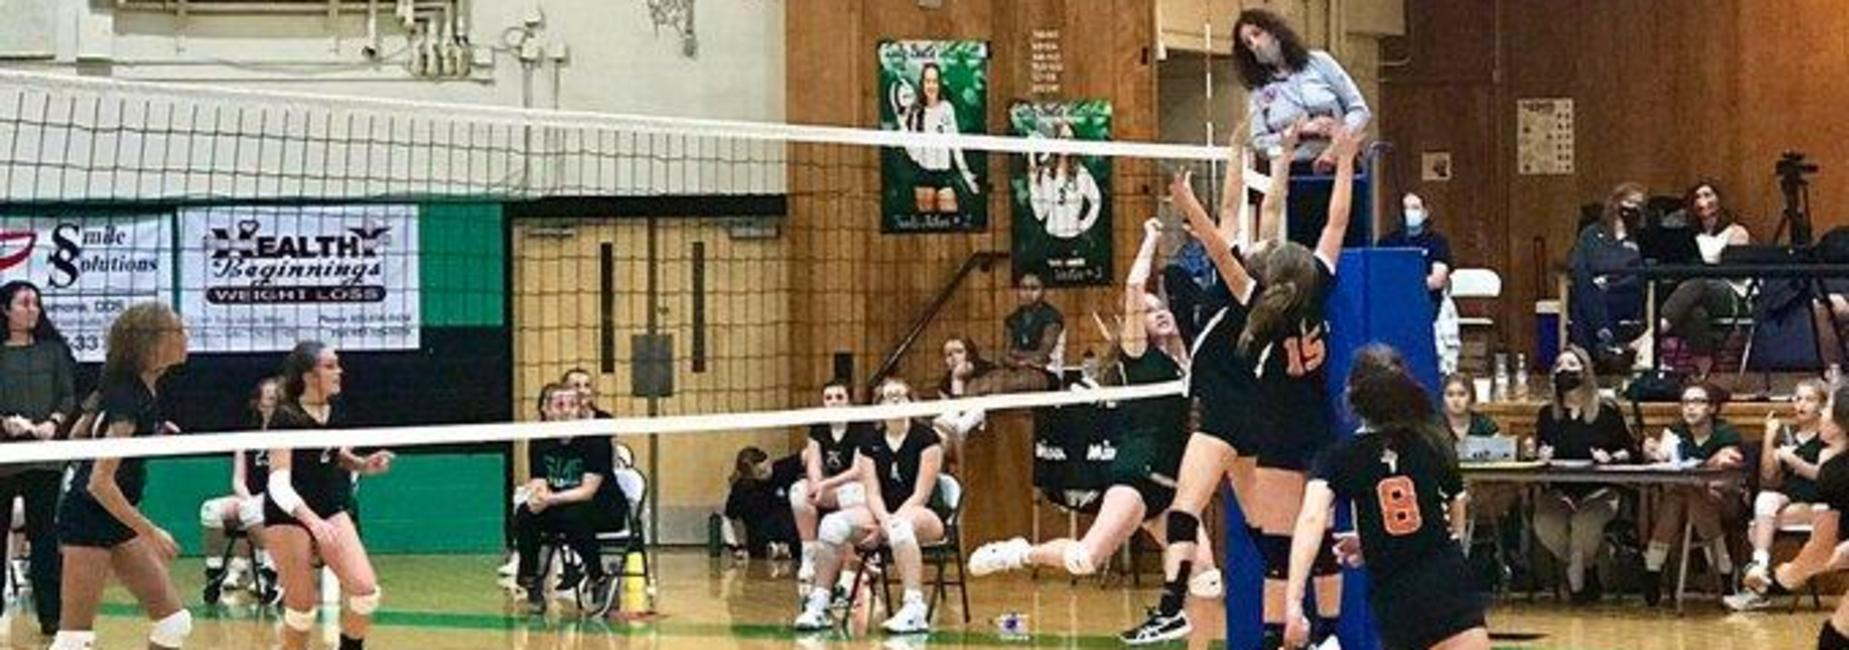 a picture of GMS girls playing volley ball